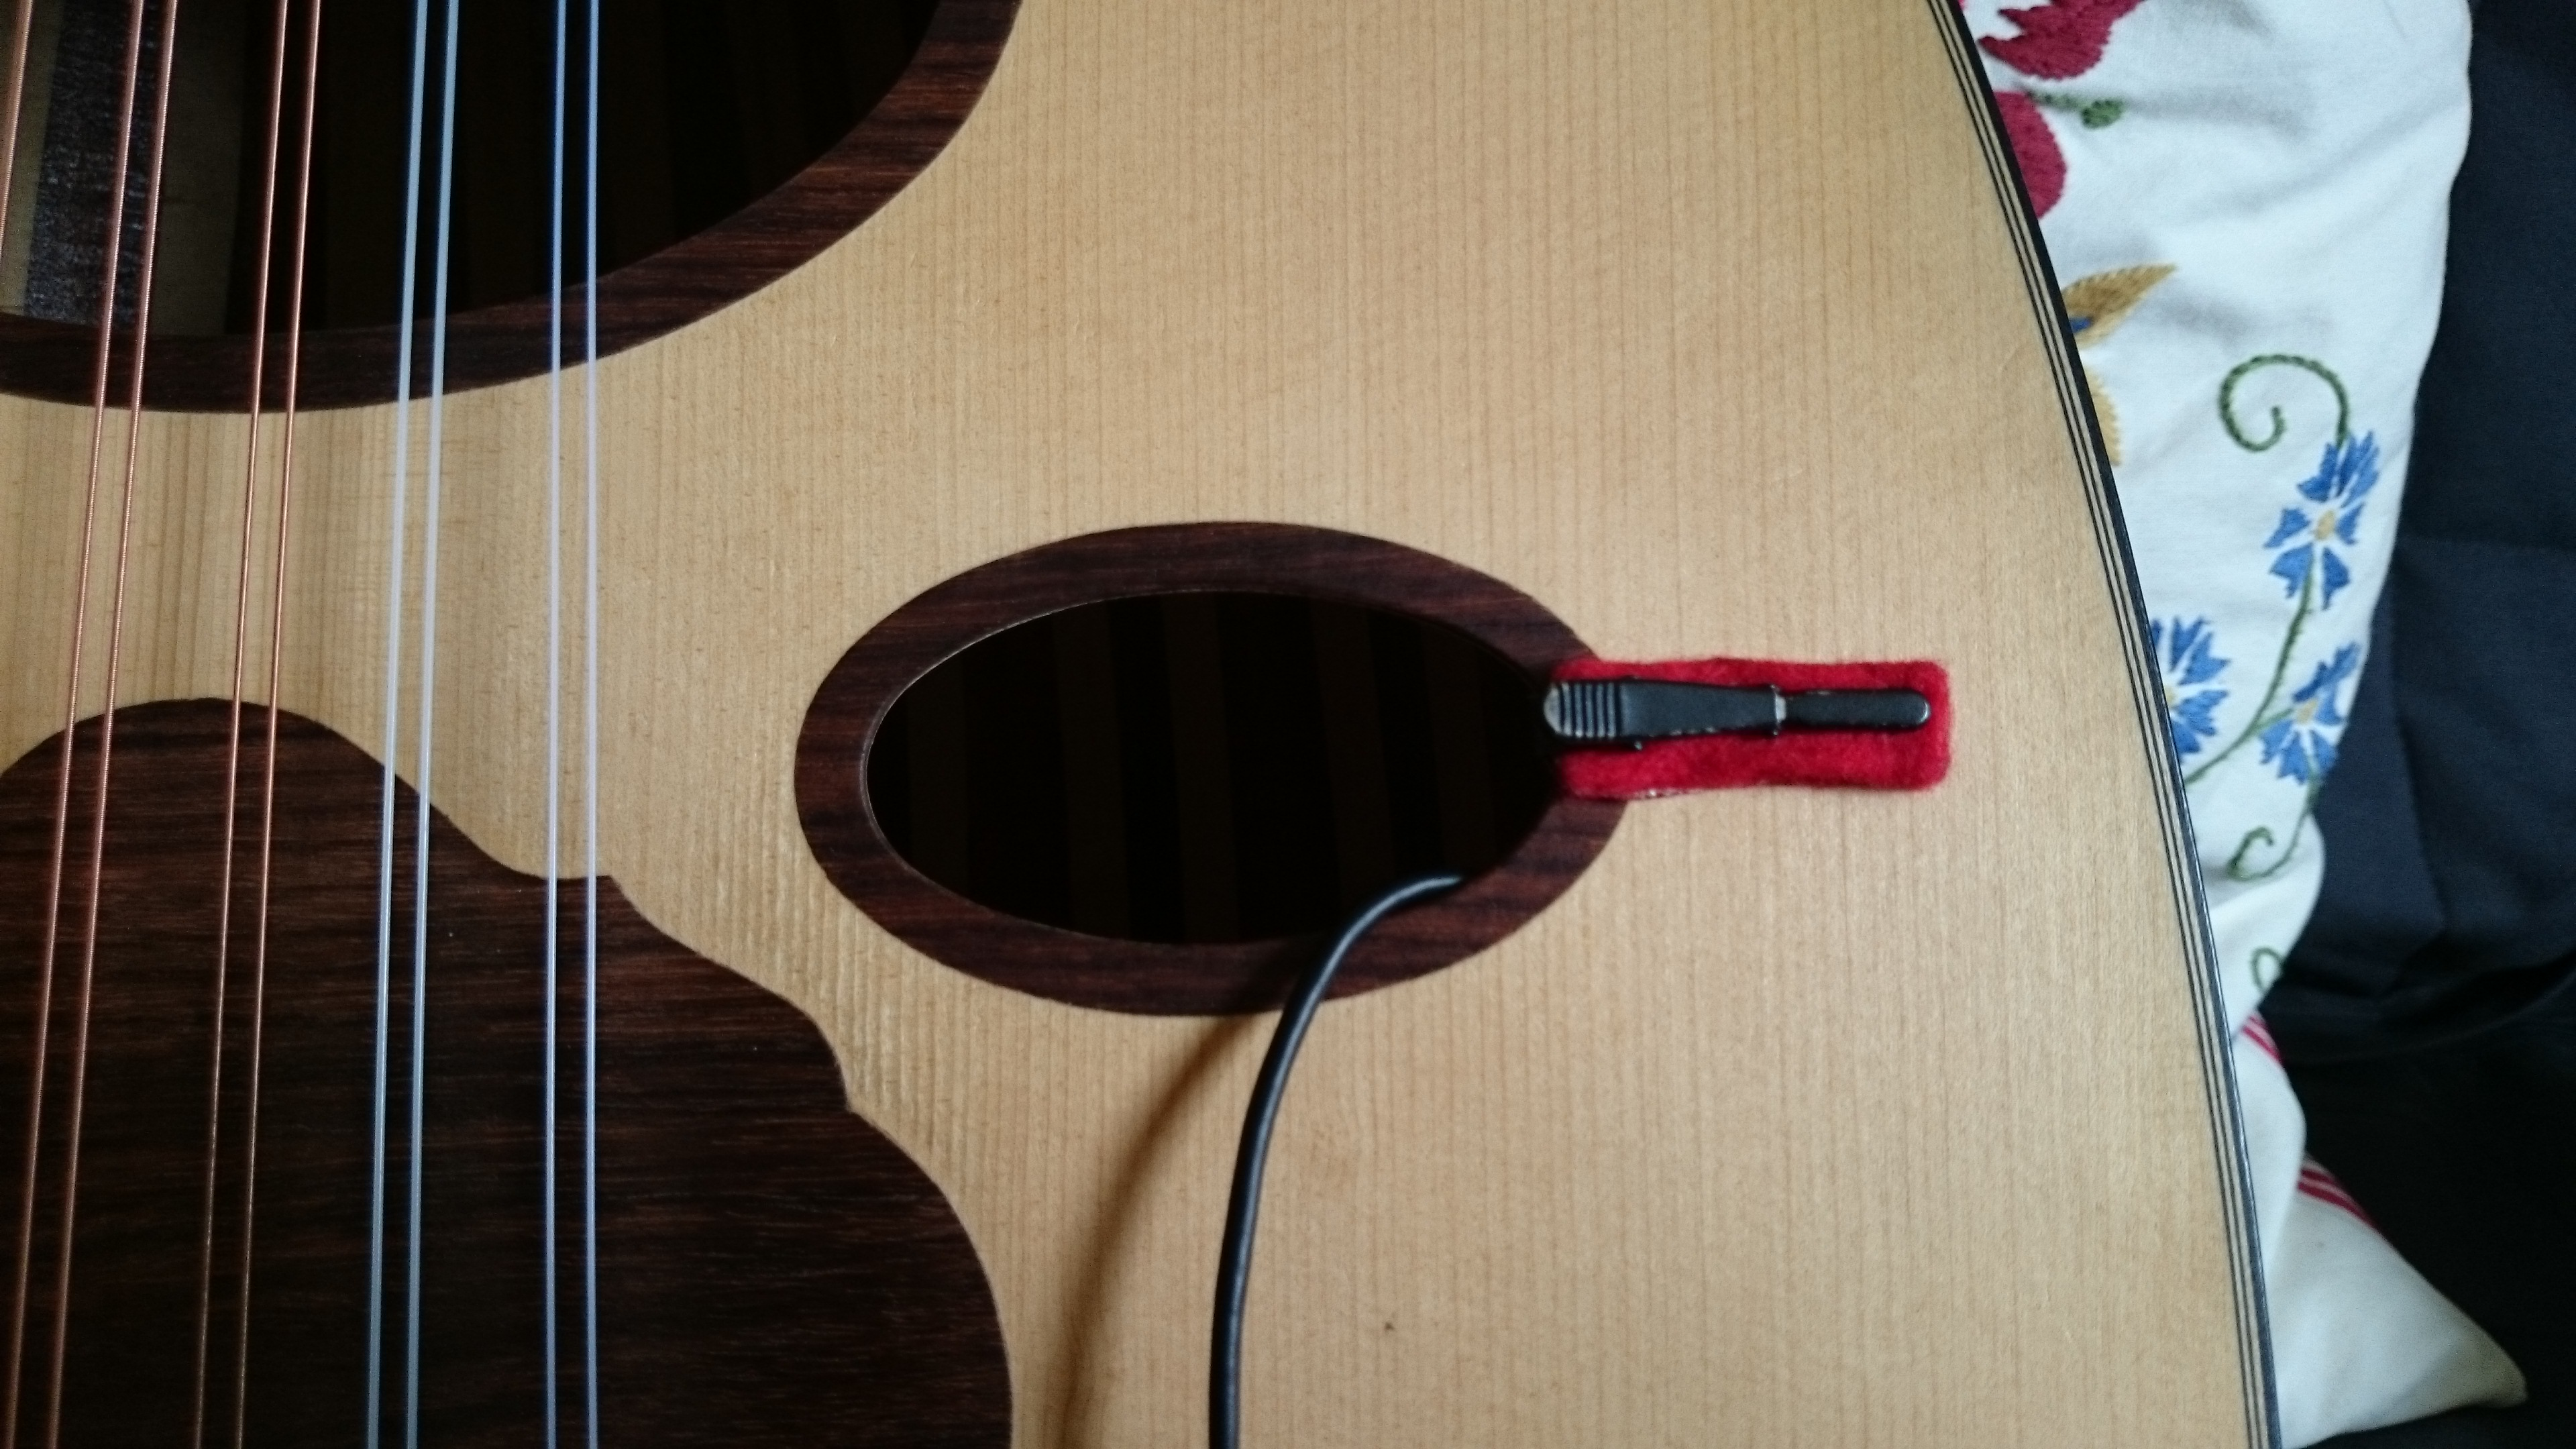 How To Amplify An Oud For Guitarists Electric Guitar Input Jack Wiring Dsc 00081 With Audio Technica Pro 70